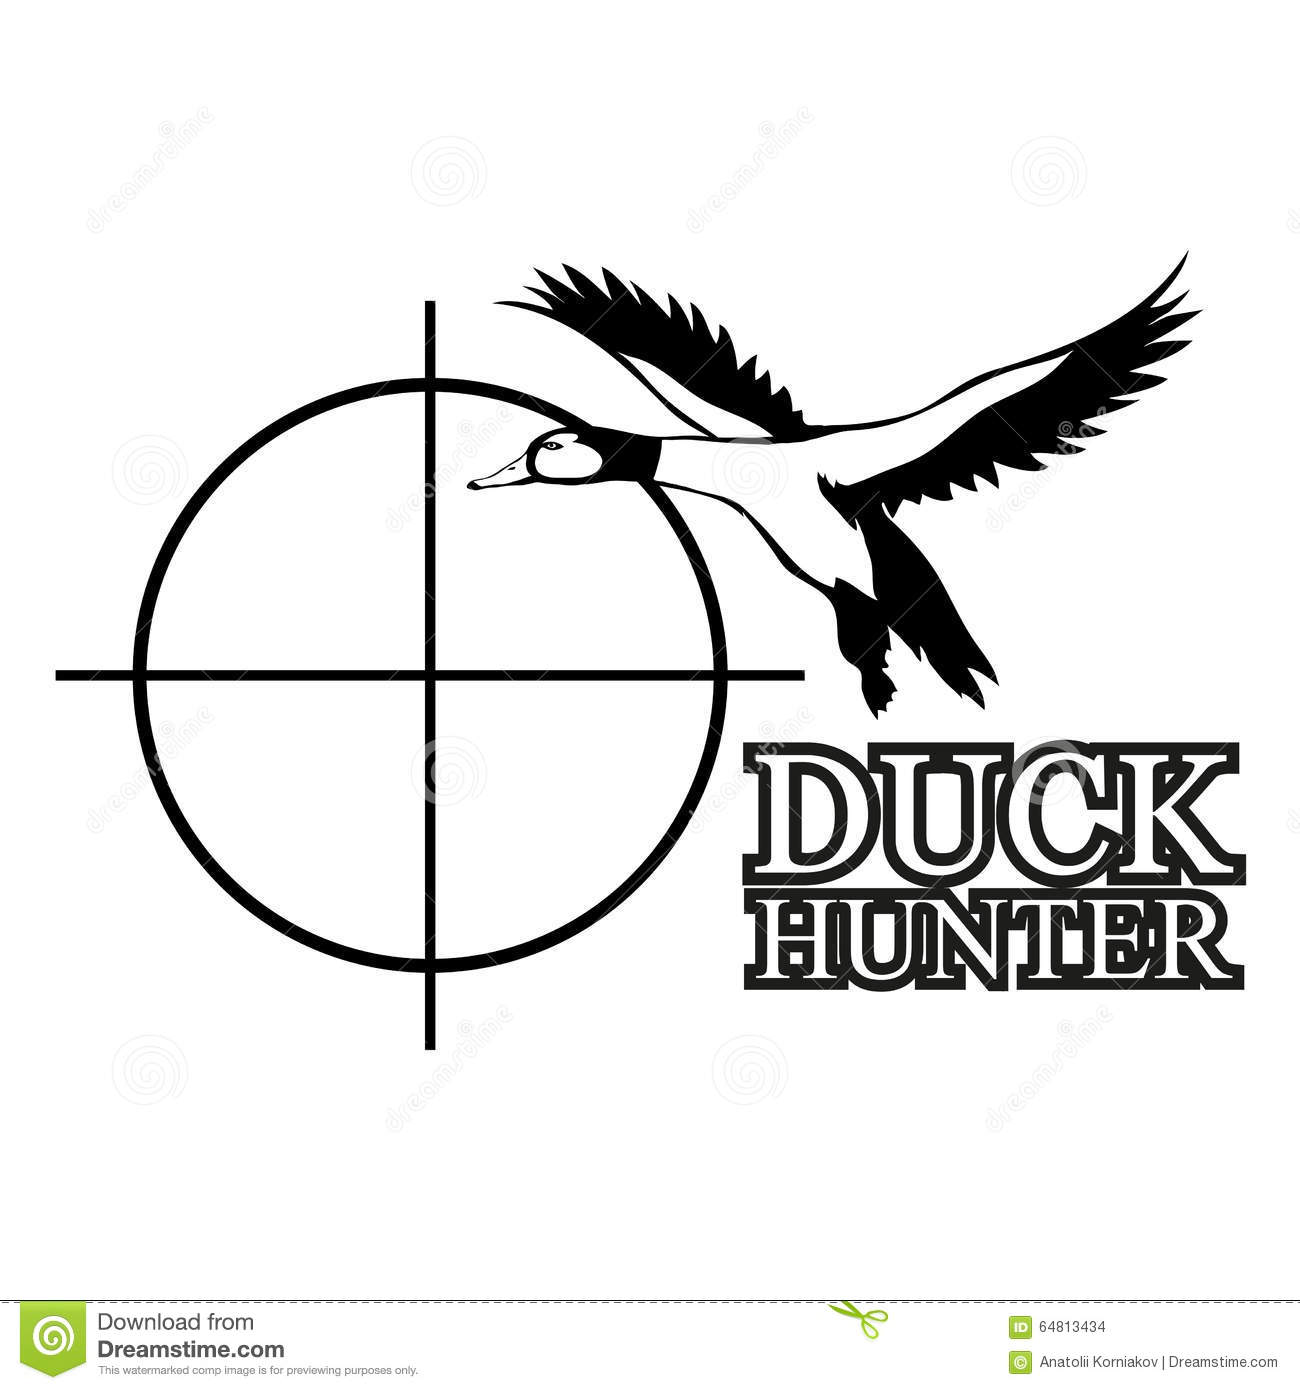 goose hunting clipart - photo #28